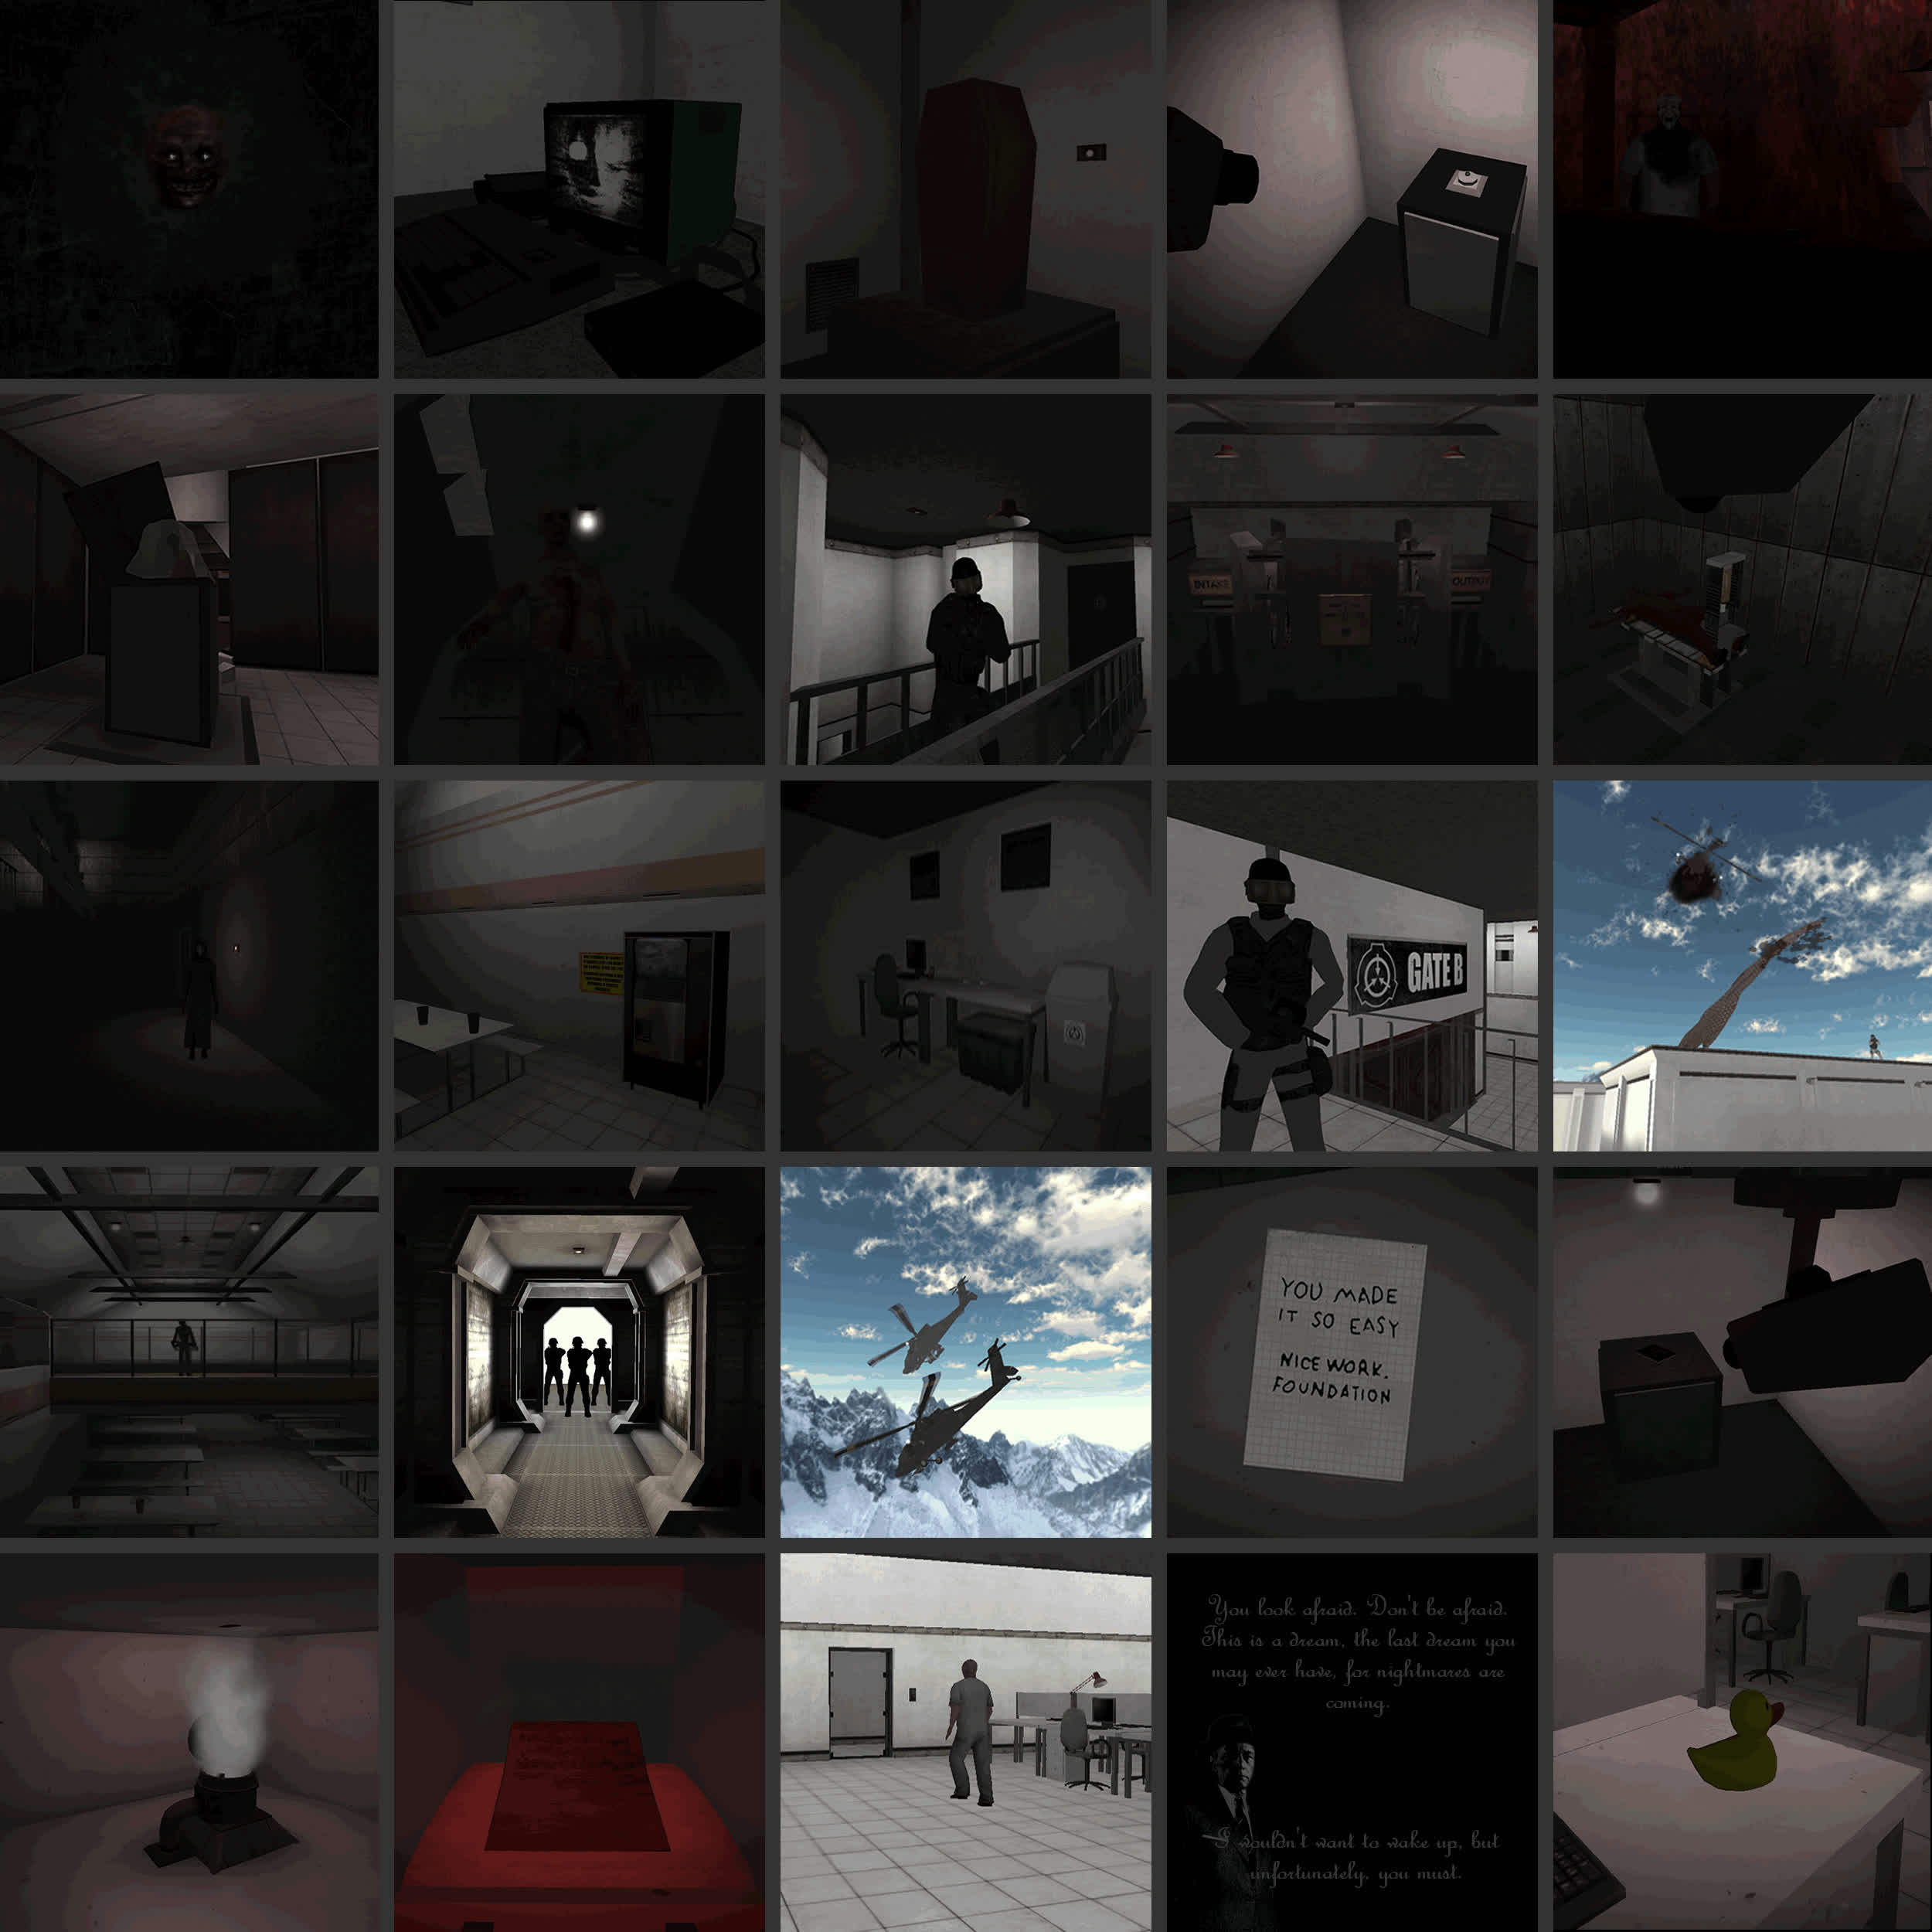 SCP Foundation by SCP-EXPUNGED GIFs